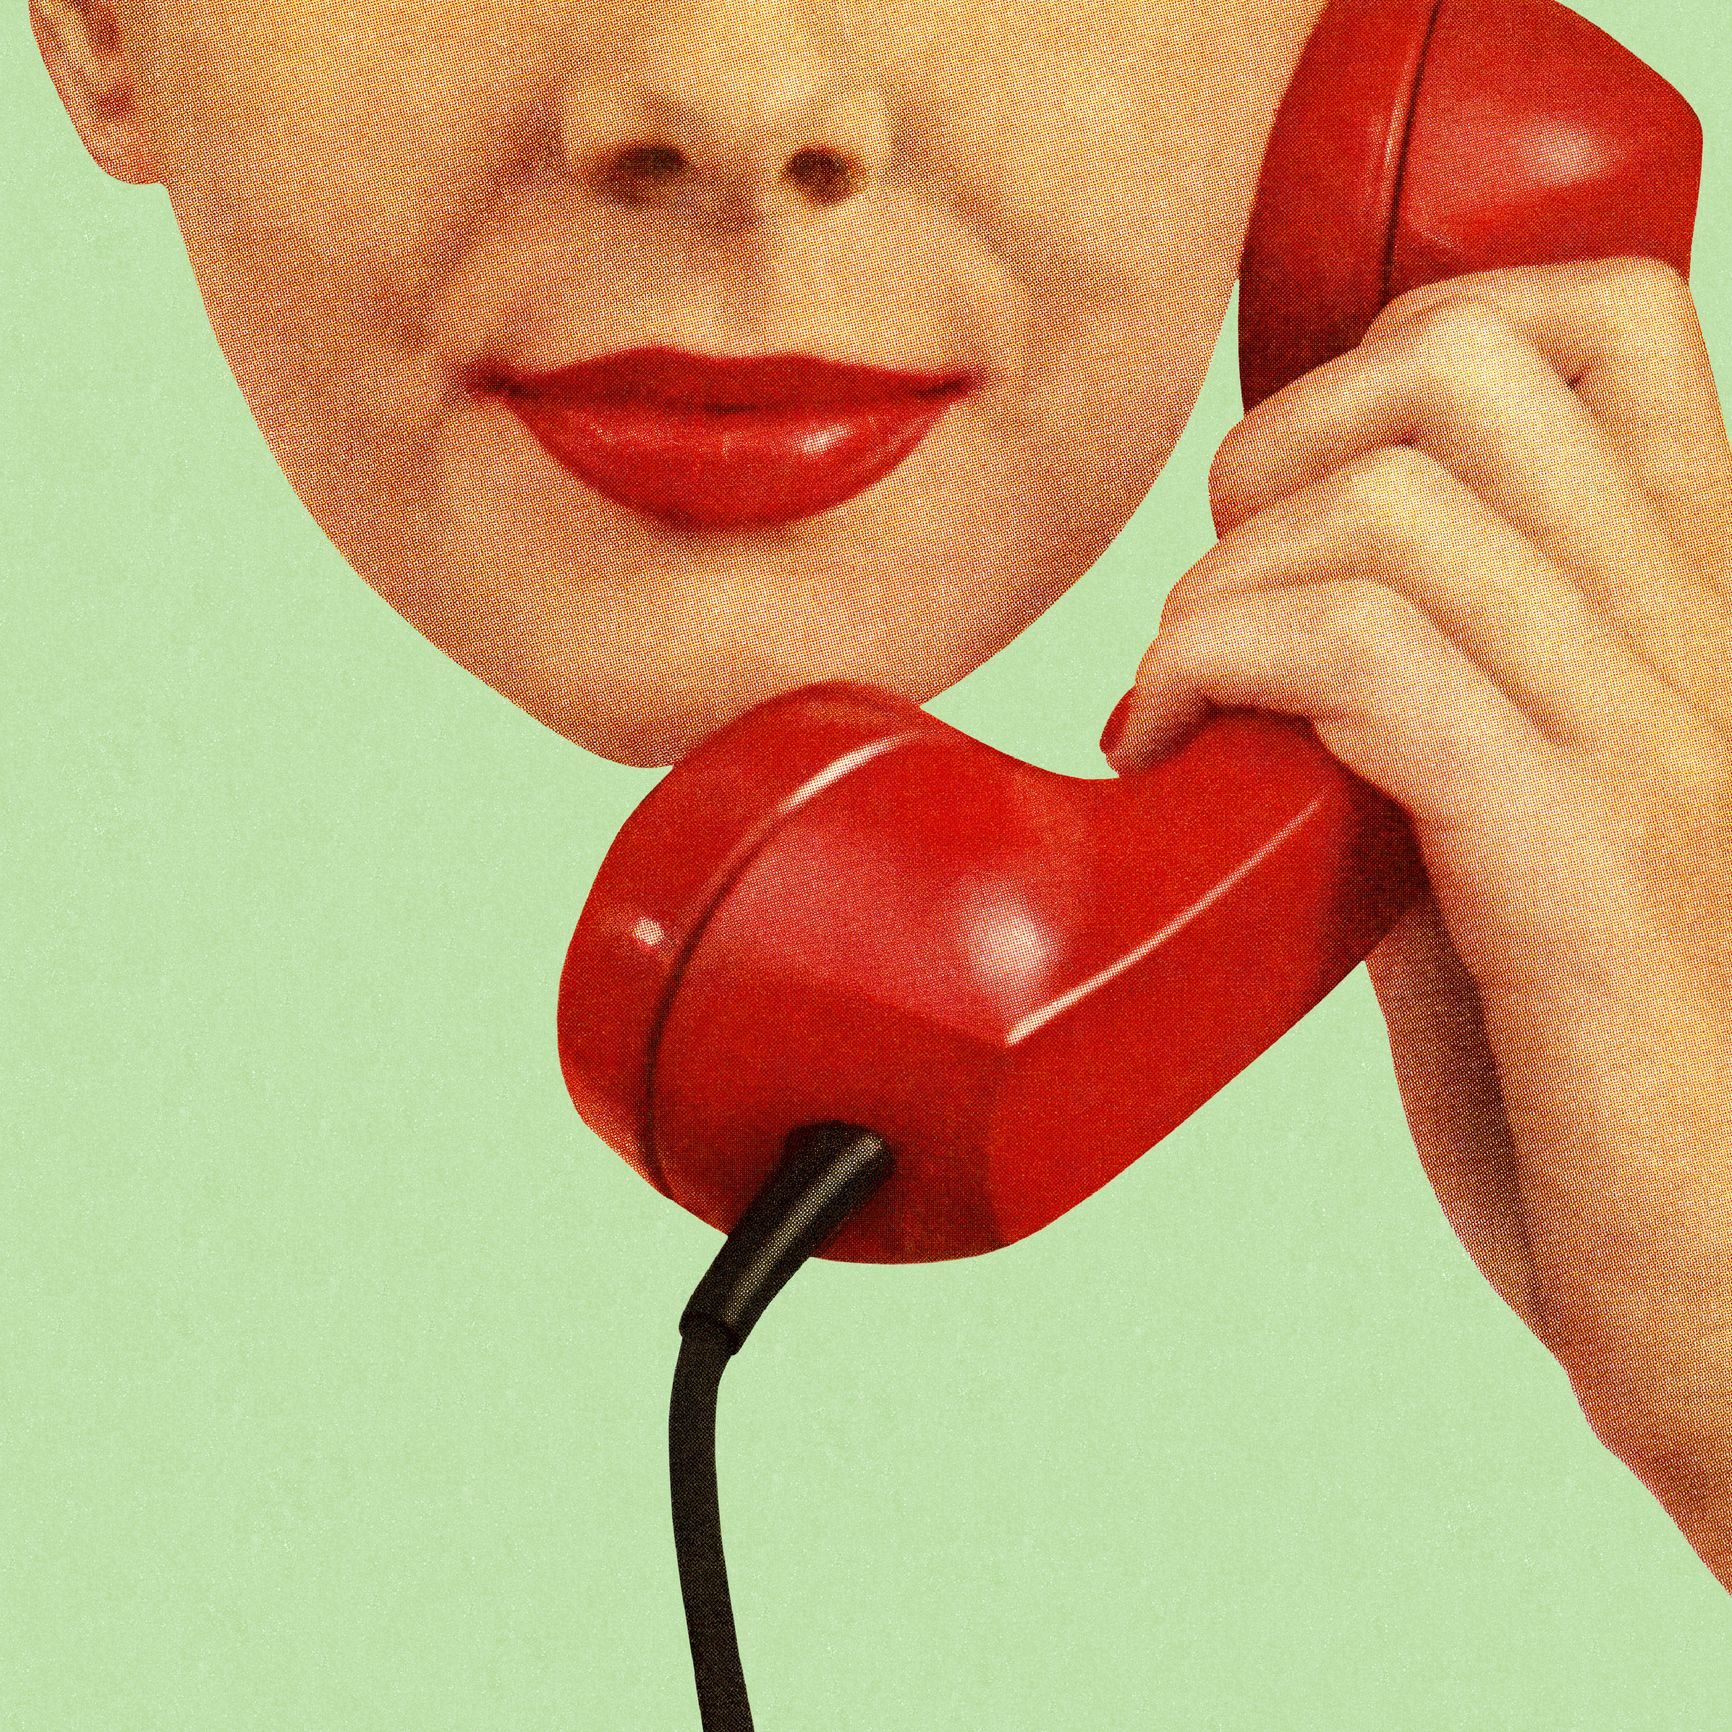 Do you suffer from phone separation anxiety?